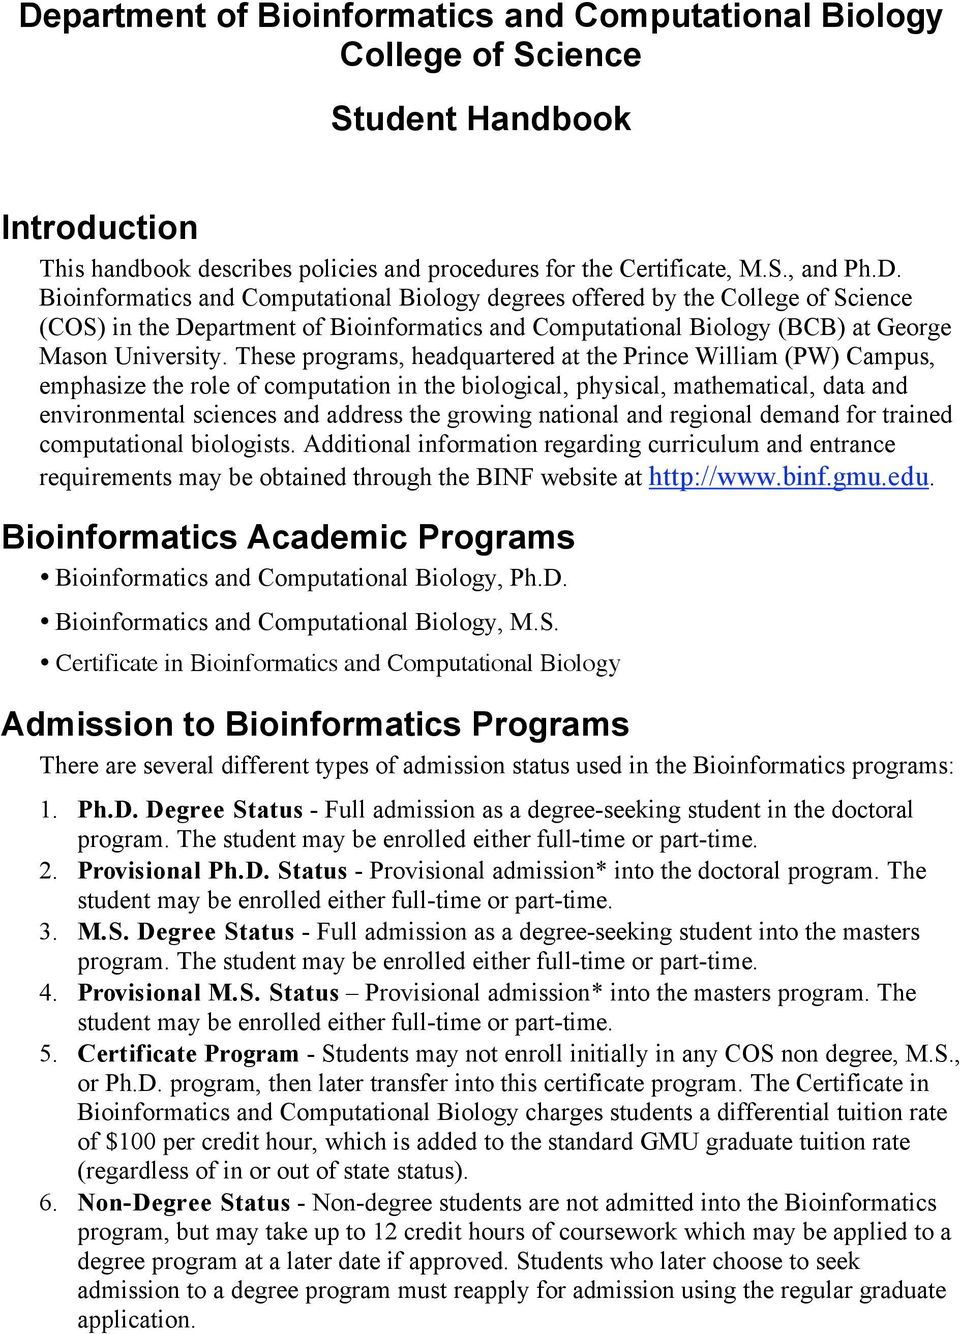 national and regional demand for trained computational biologists. Additional information regarding curriculum and entrance requirements may be obtained through the BINF website at http://www.binf.